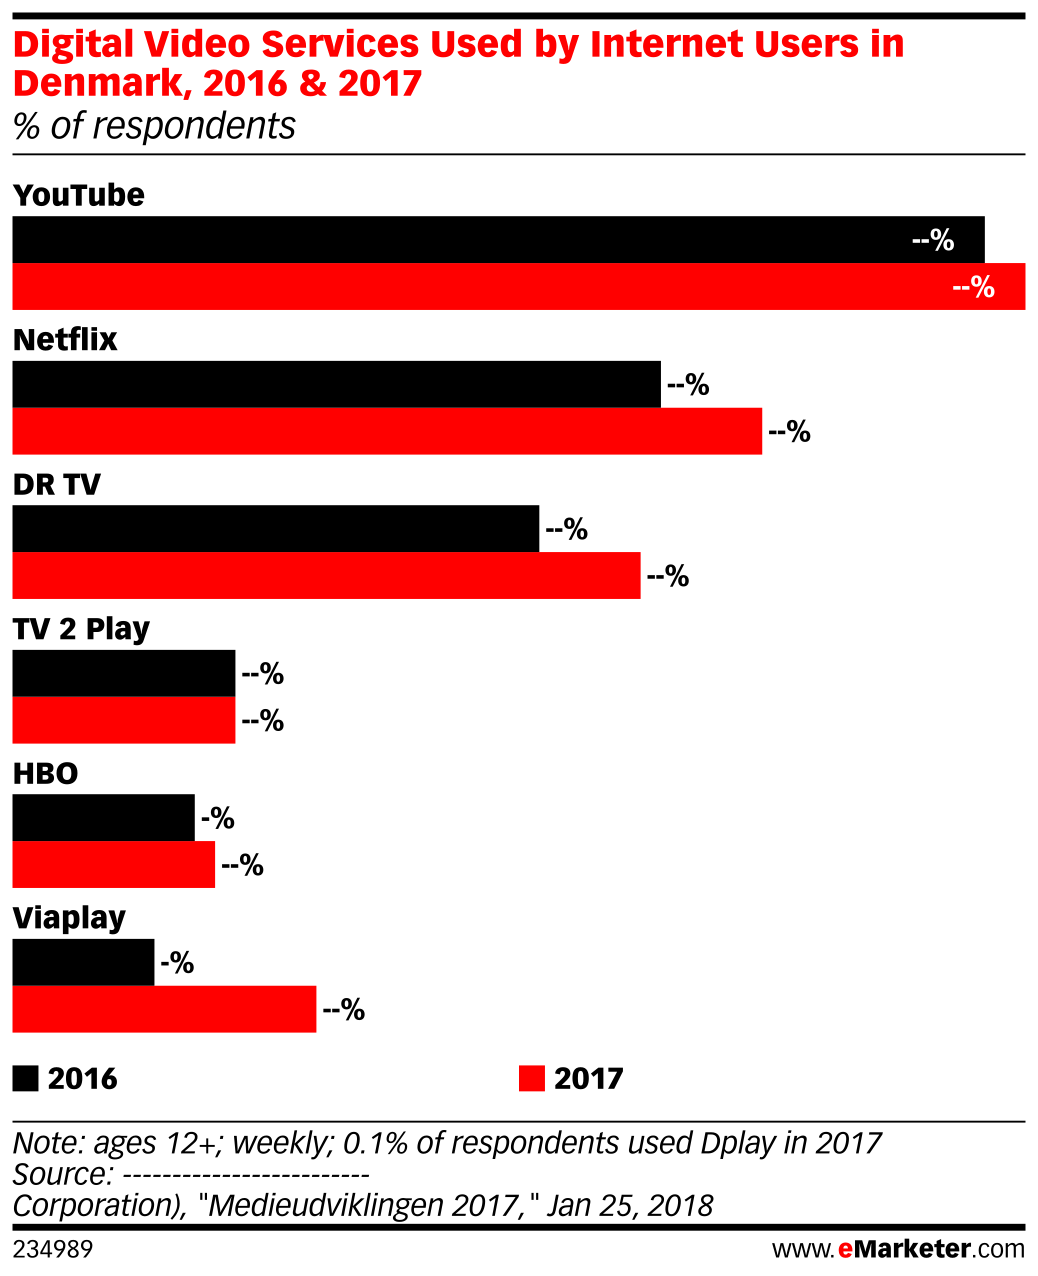 Digital Video Services Used by Internet Users in Denmark, 2016 & 2017 (% of respondents)